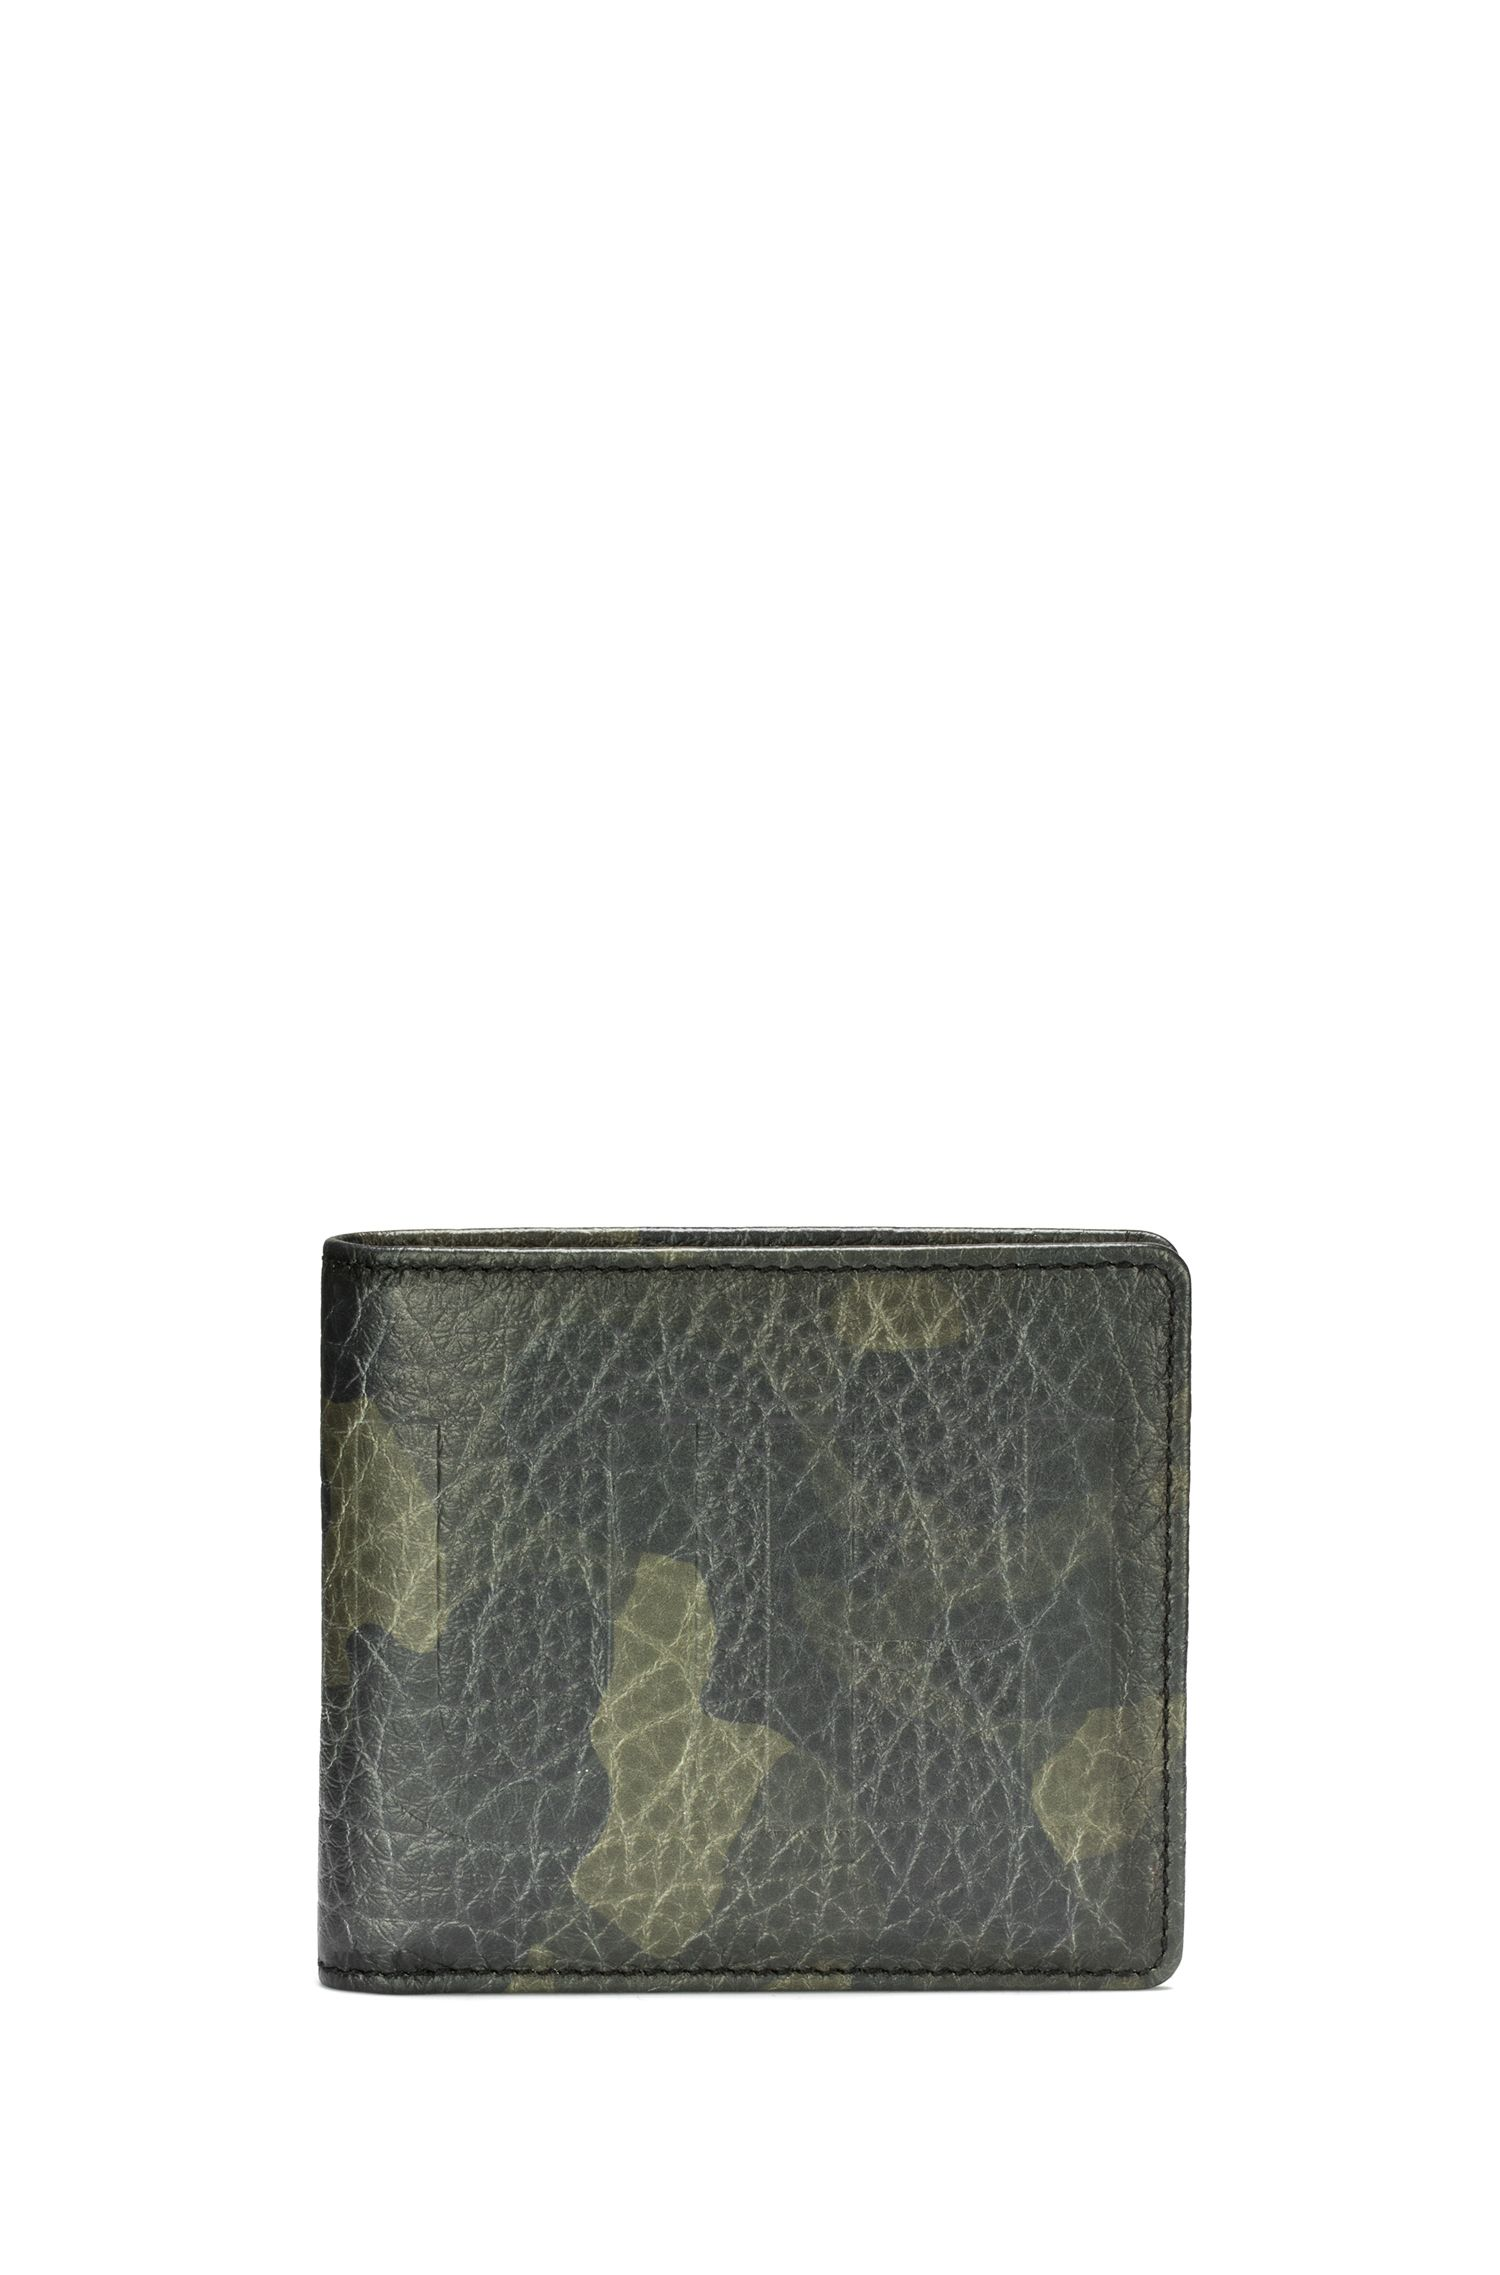 Billfold wallet in camouflage-print leather with eight card slots